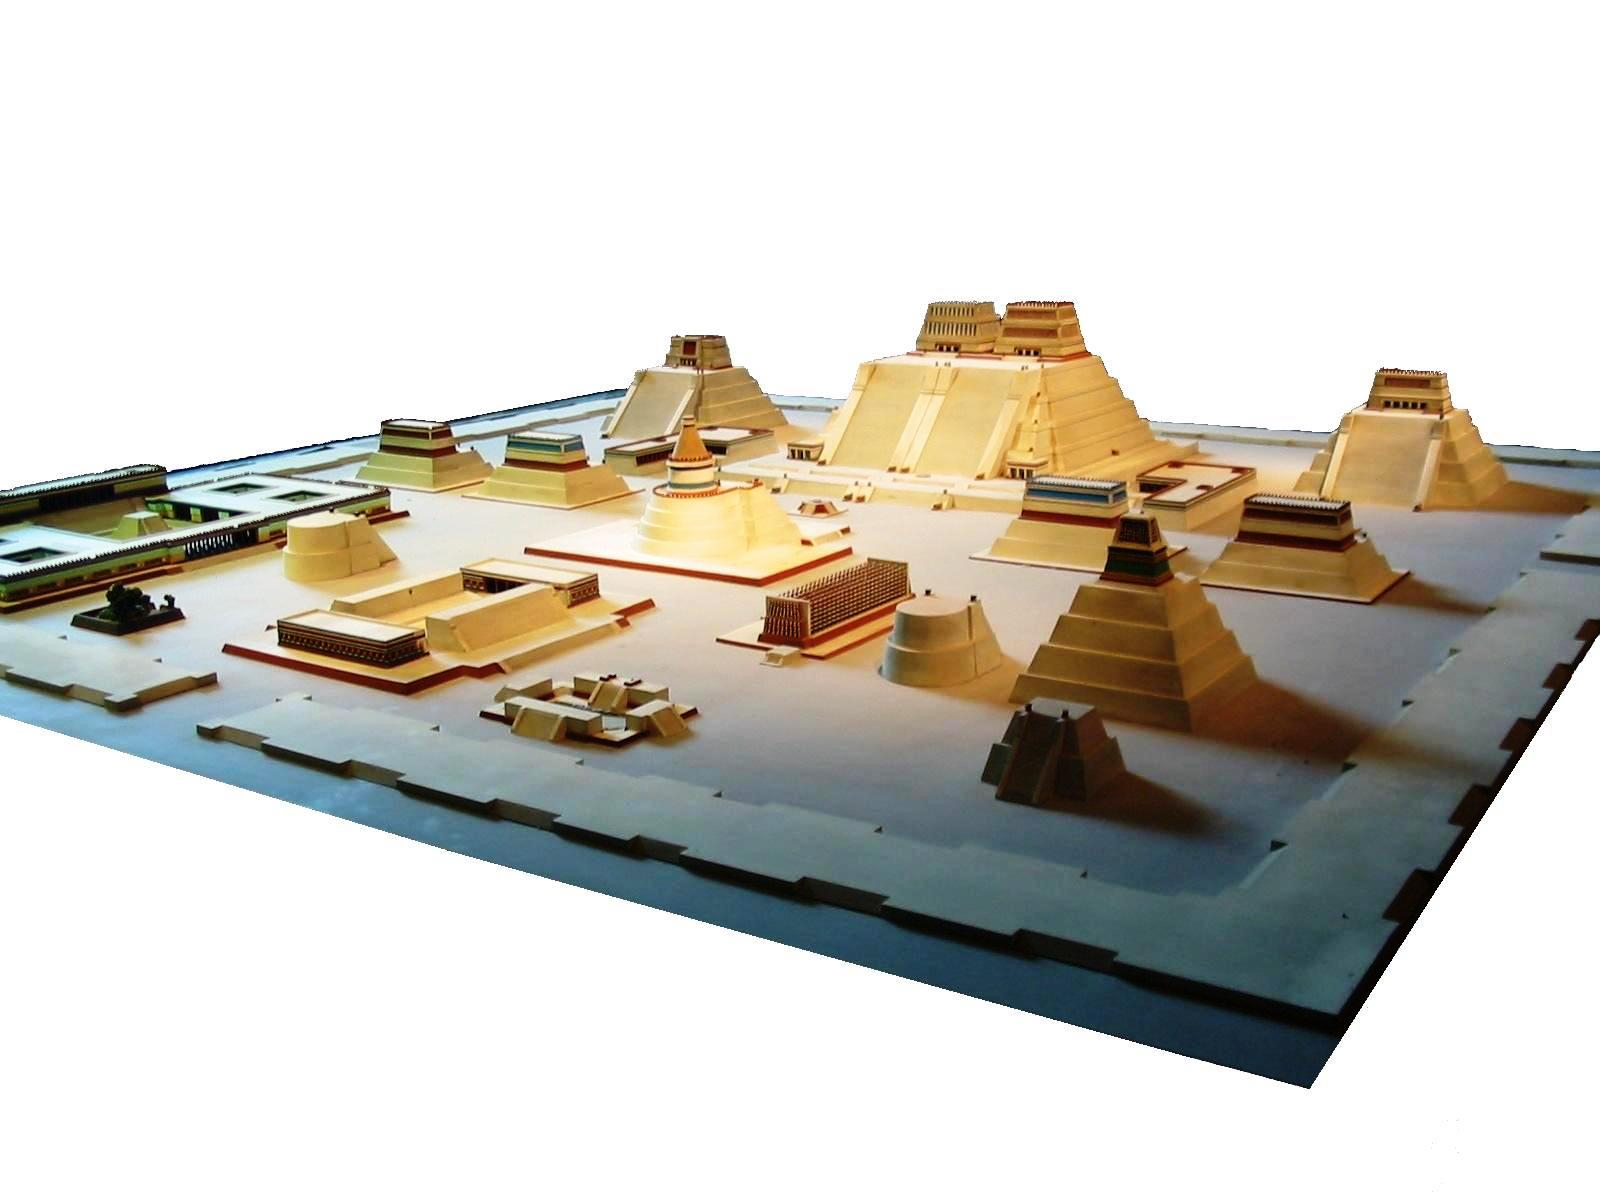 What is known about tenochtitlan essay